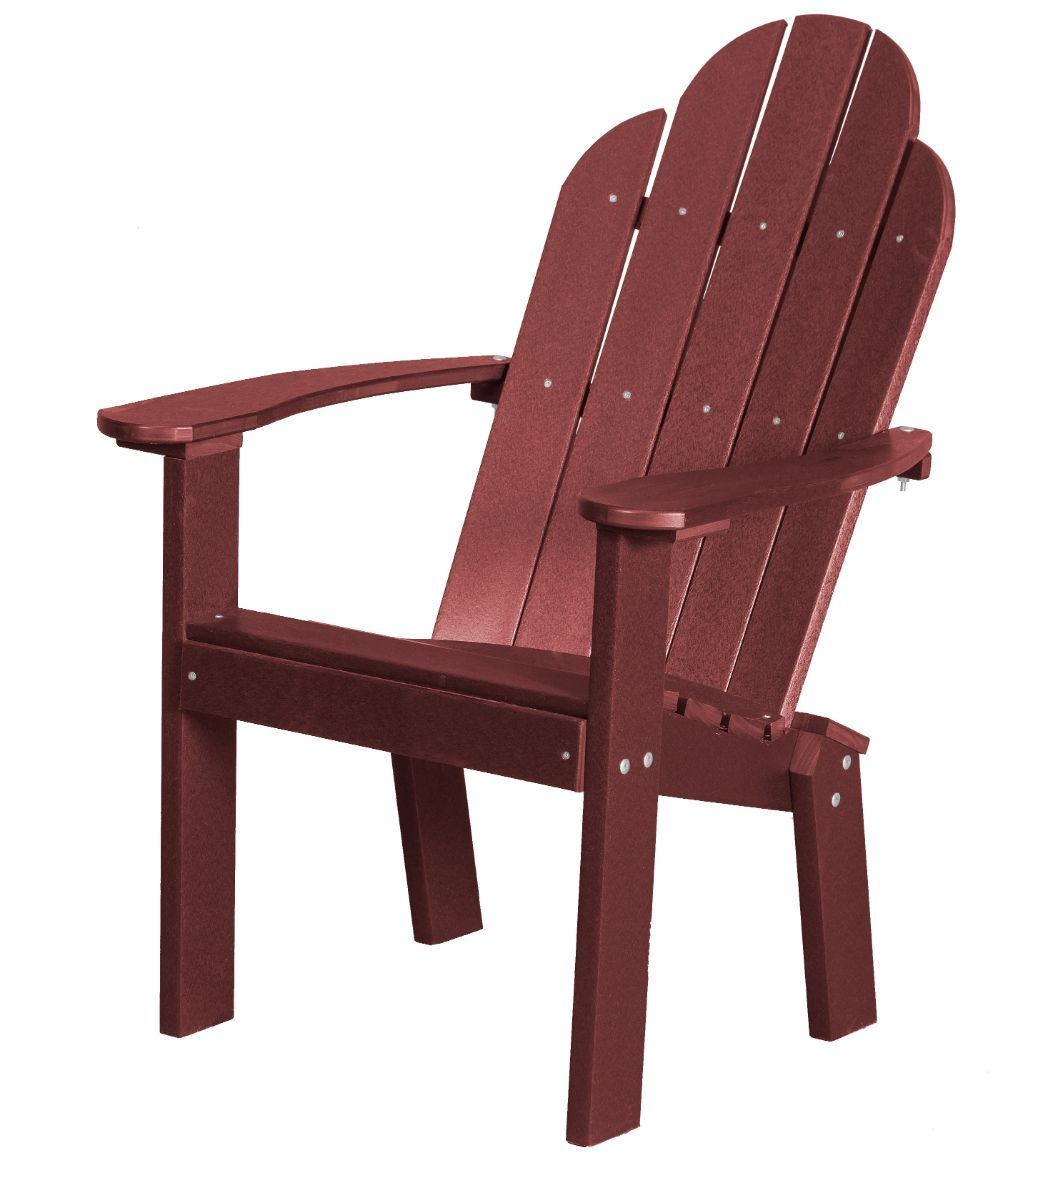 Cherry Wood Odessa Outdoor Dining Chair